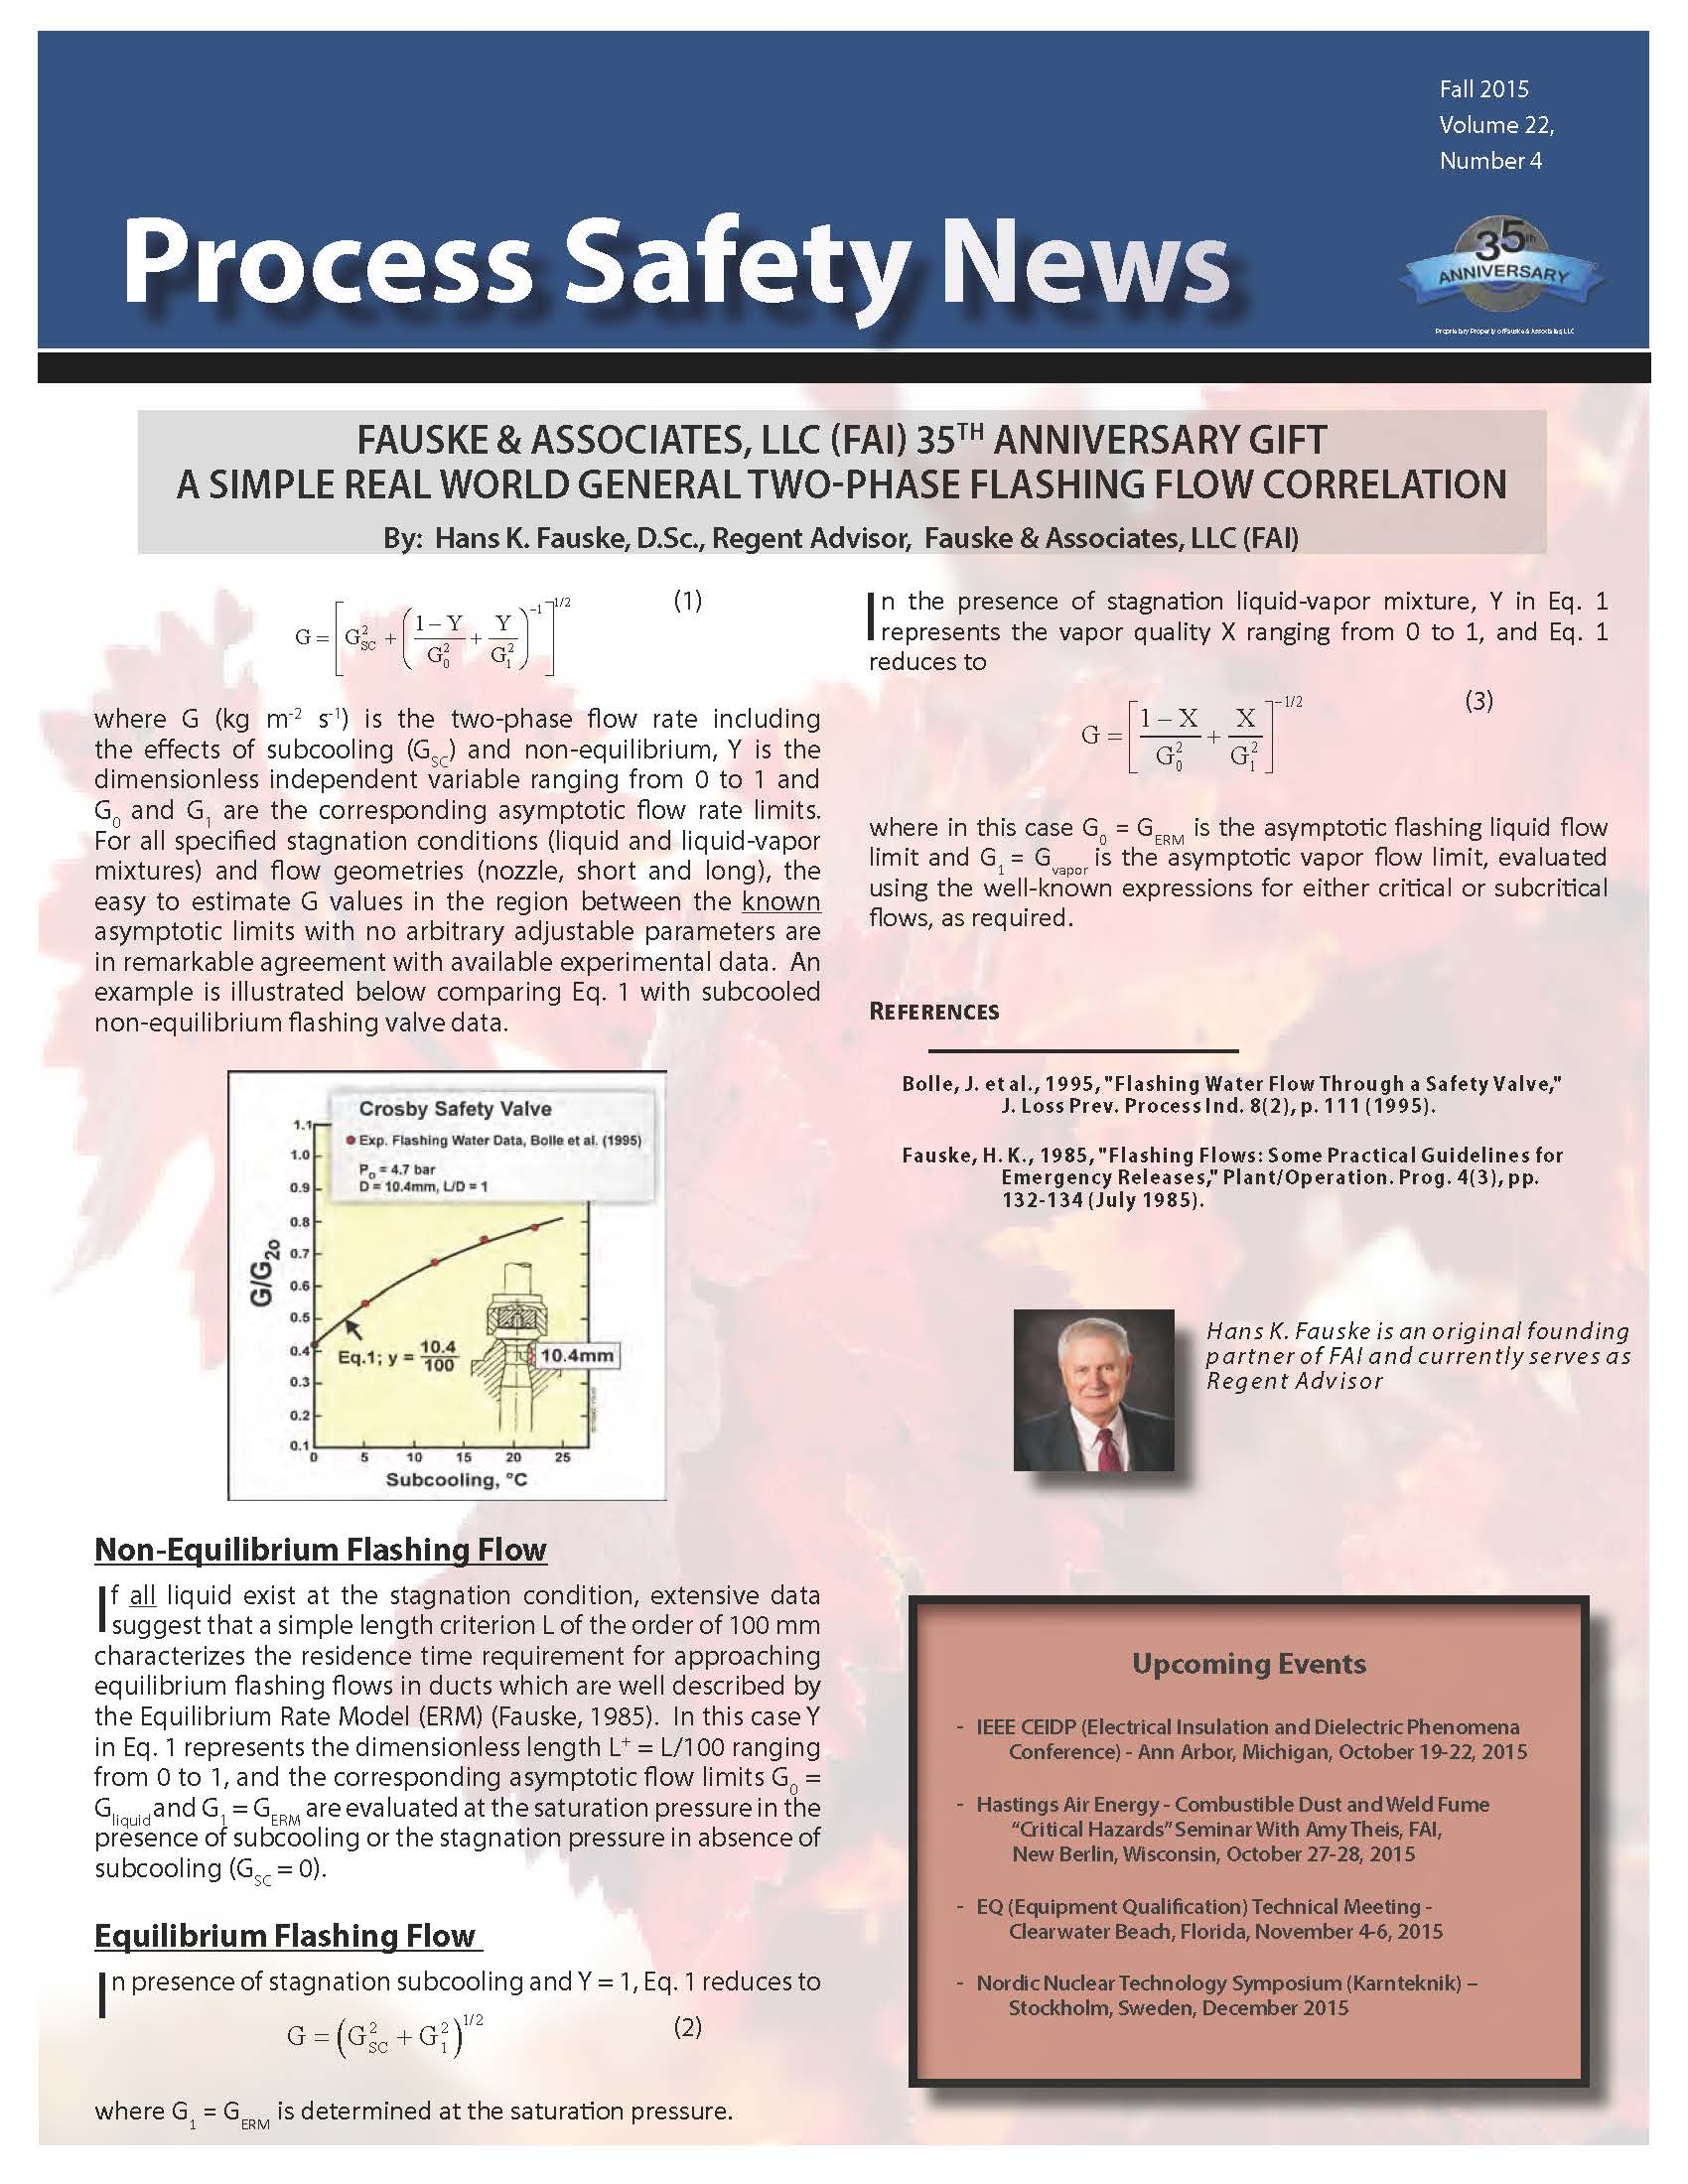 Fall 2015 Process Safety Newsletter